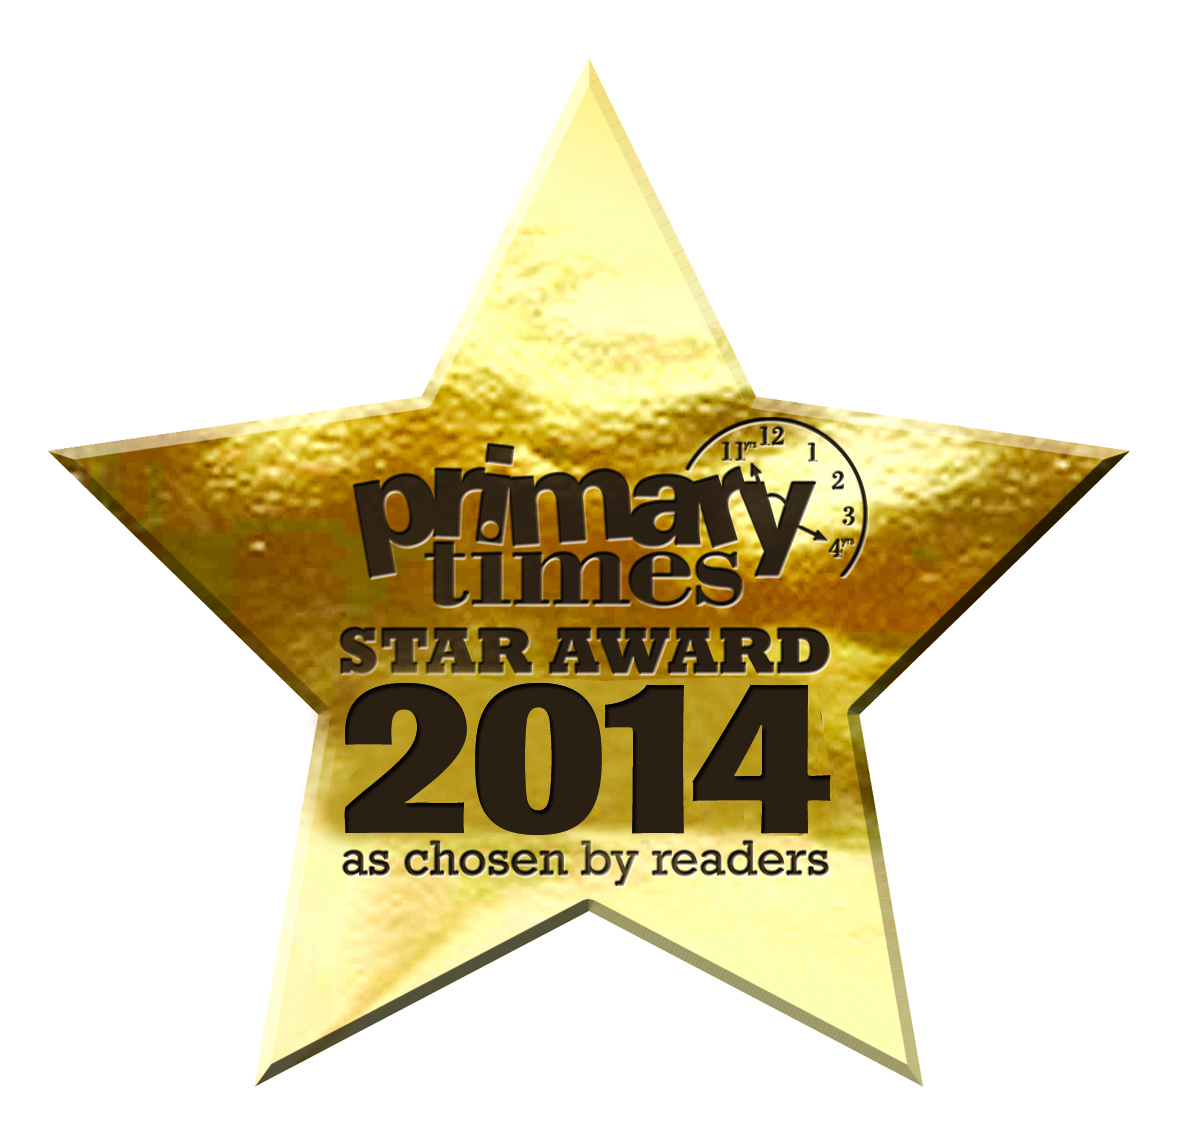 Primary Times Star Award Winners 2014